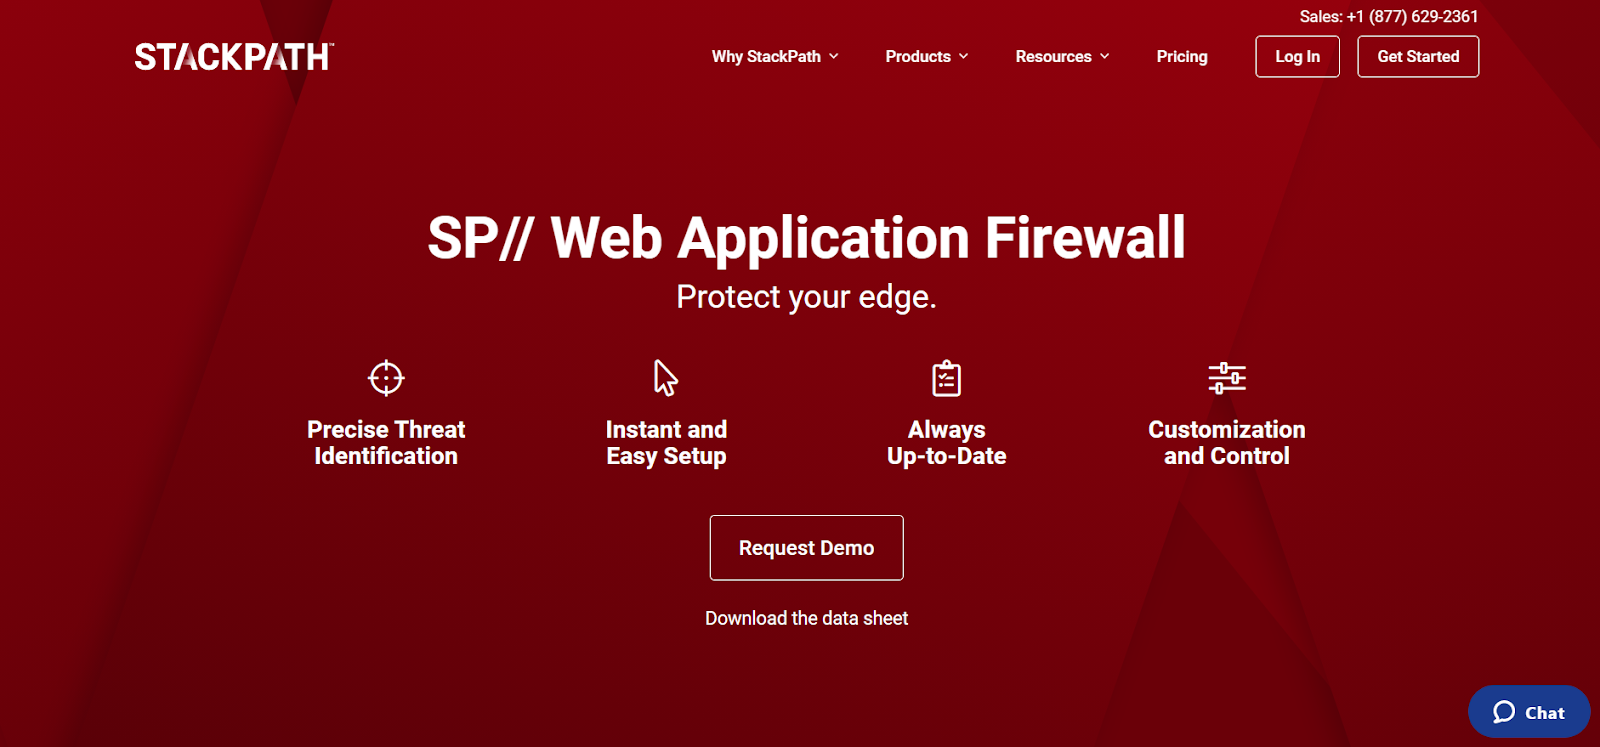 StackPath is a Web Application Firewall Application